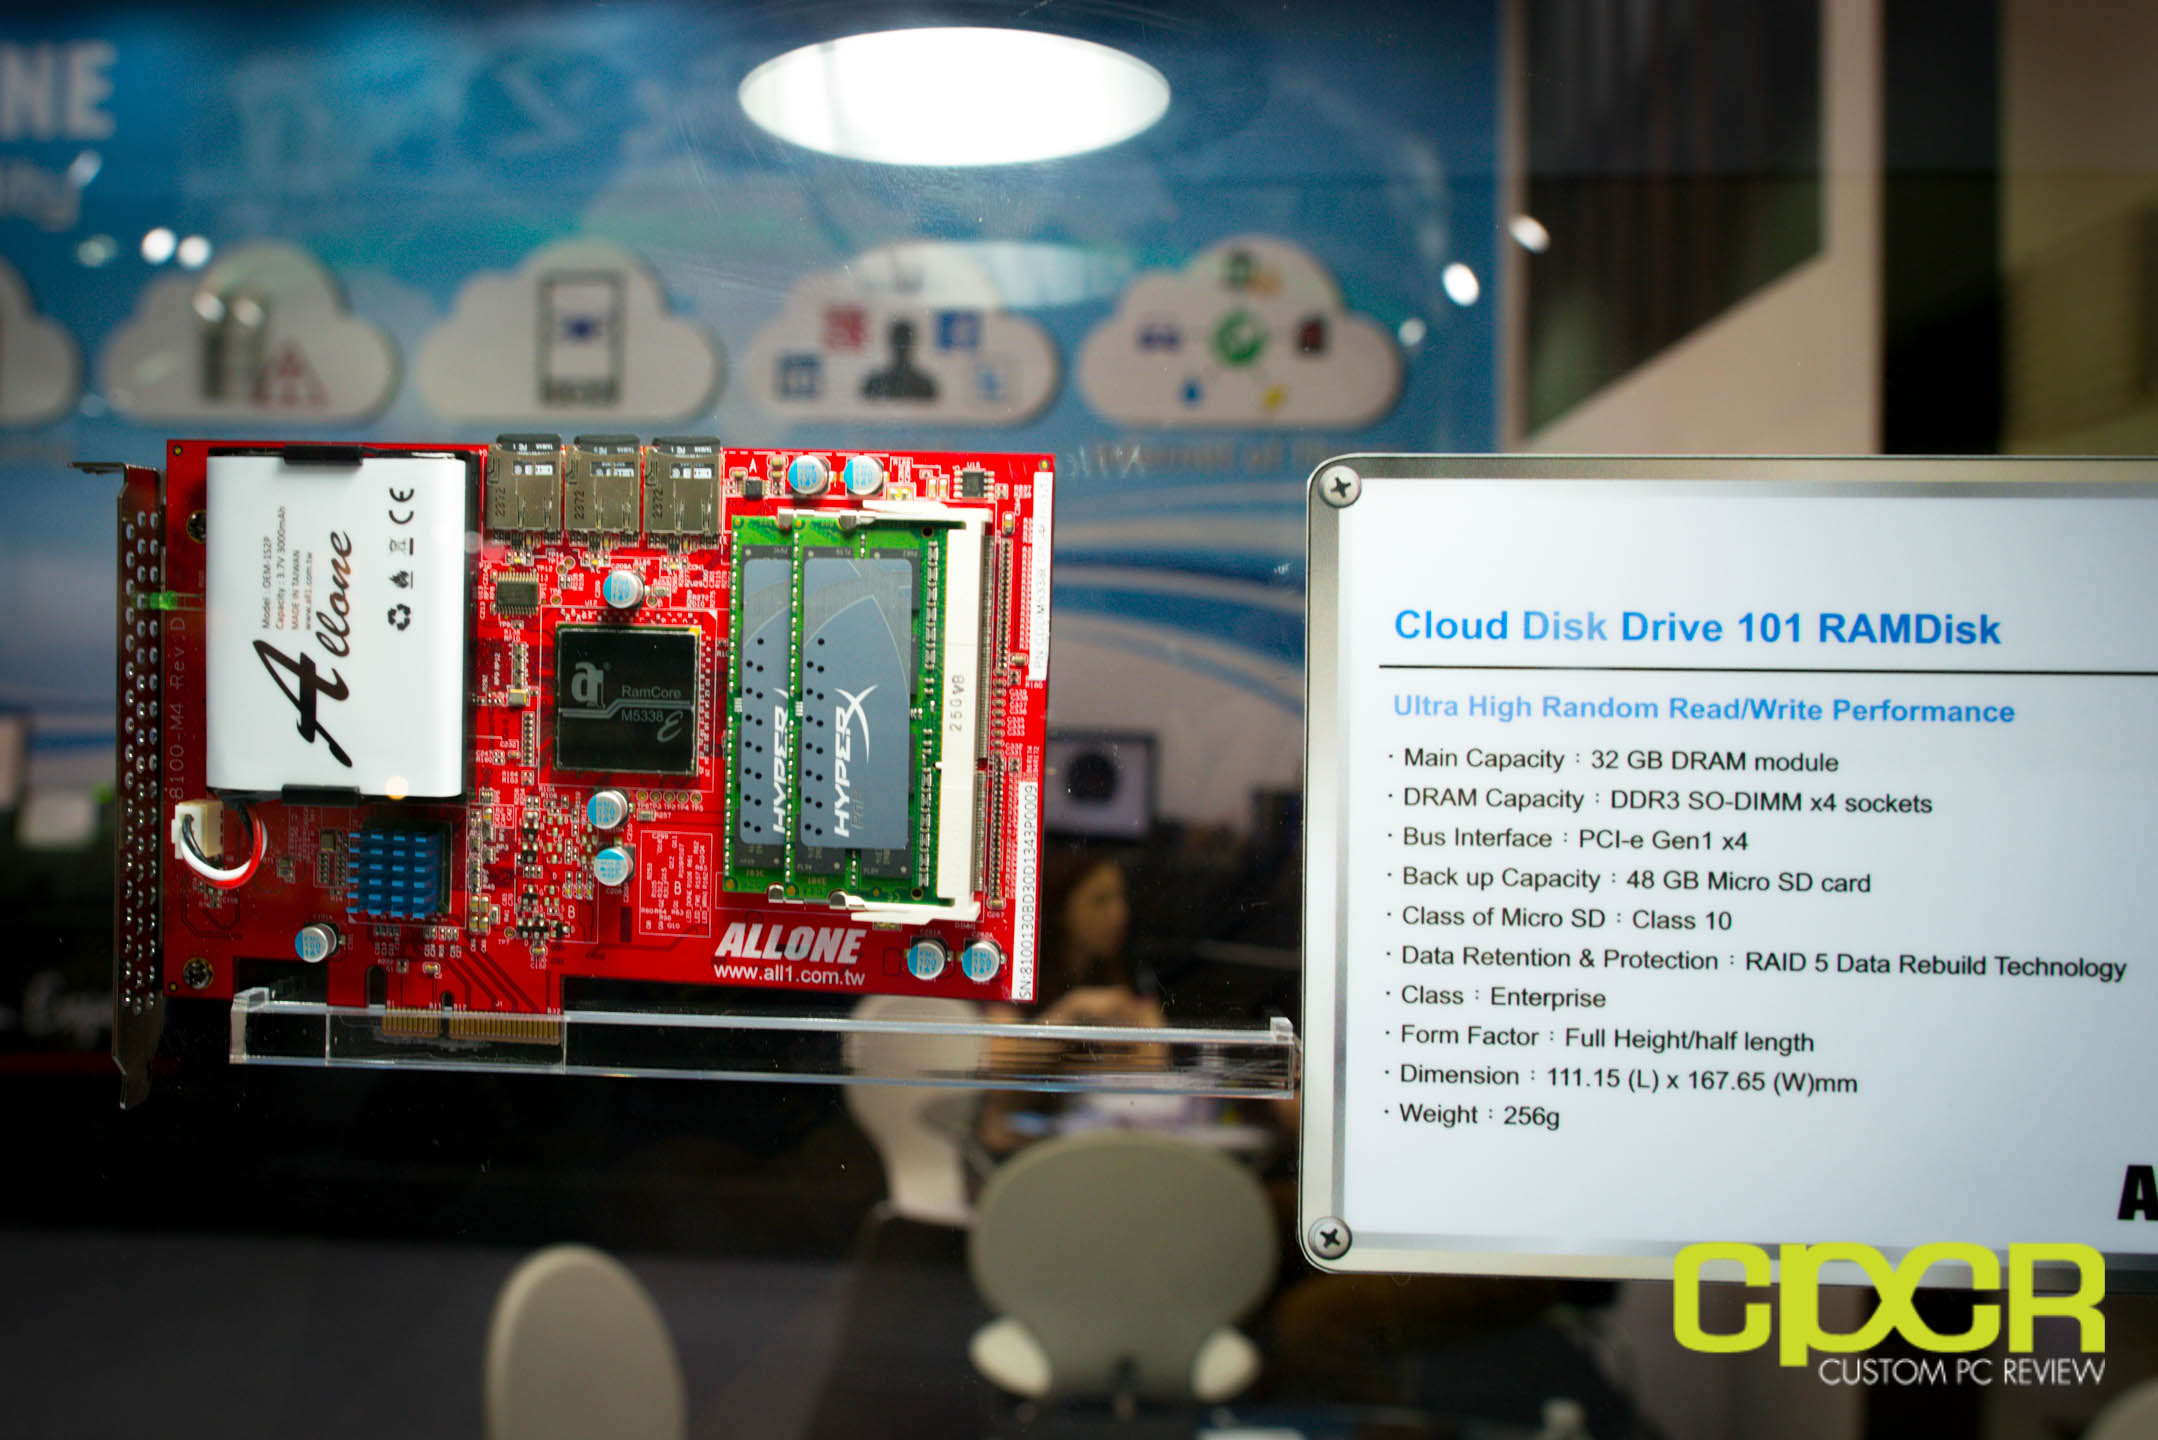 allone-cloud-disk-drive-101-pcie-ramdisk-computex-2014-custom-pc-review-1